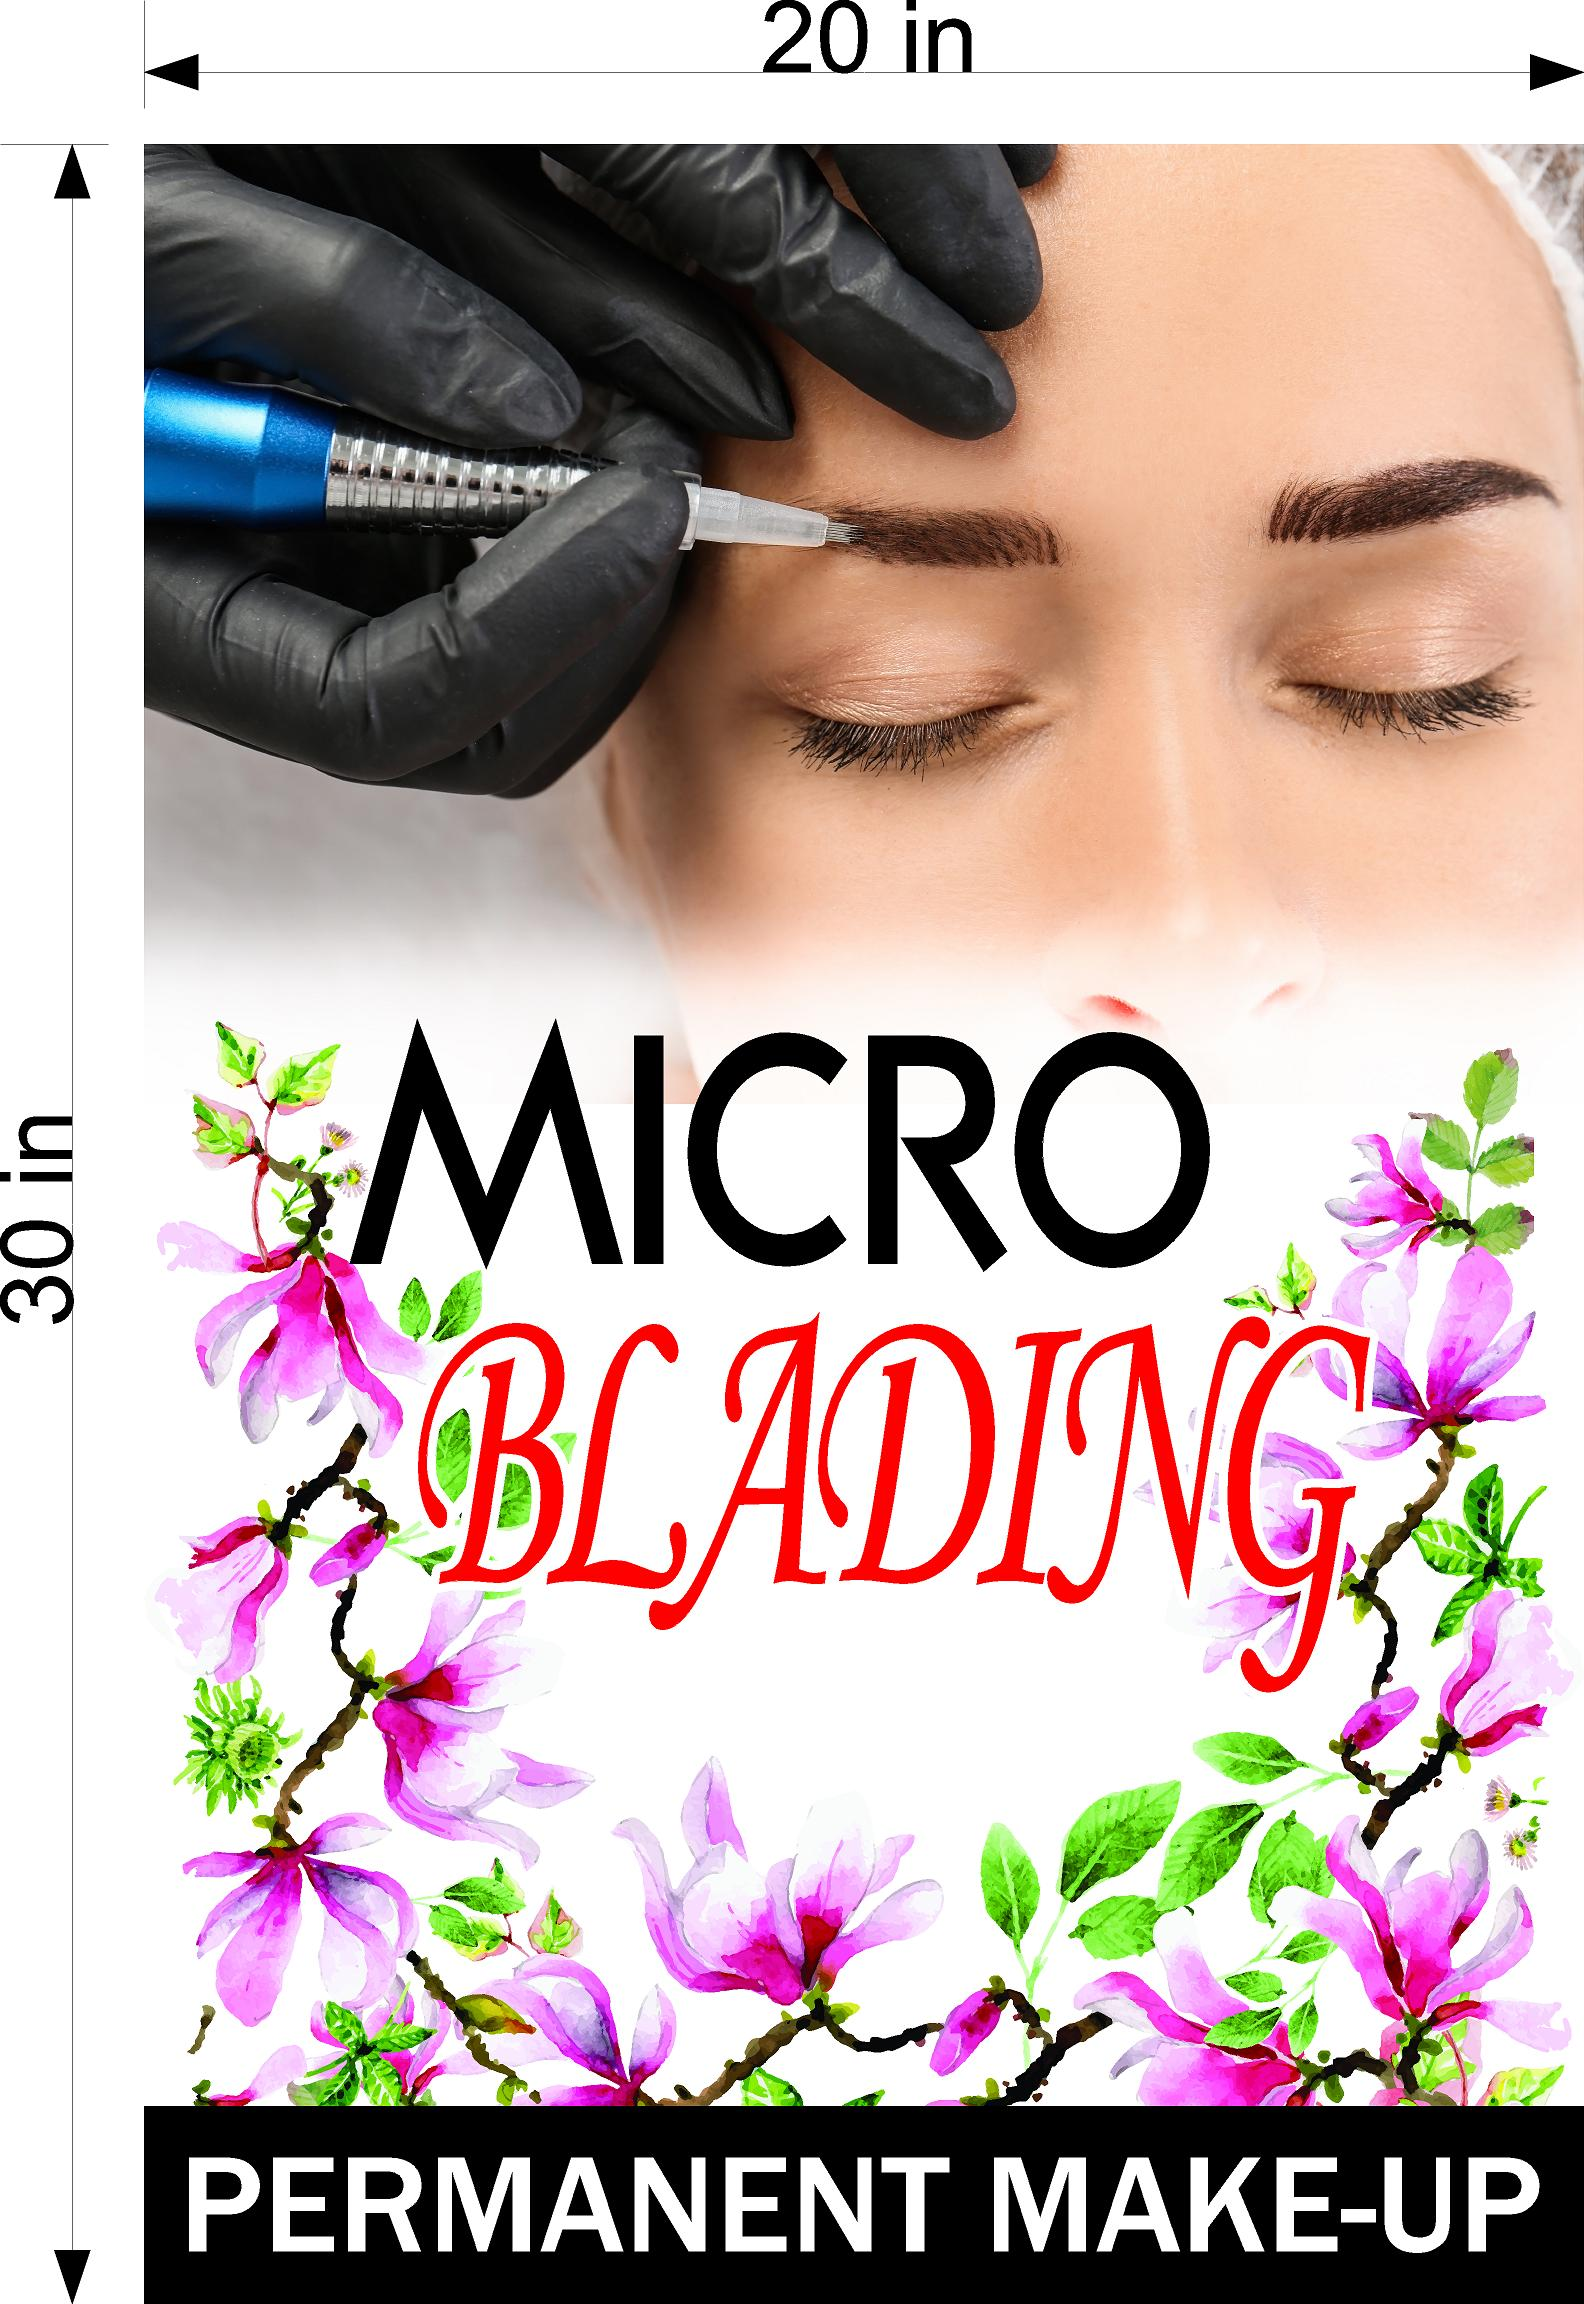 Microblading 11 Perforated Mesh One Way Vision See-Through Window Vinyl Salon Services Permanent Make-Up Tattoo Vertical